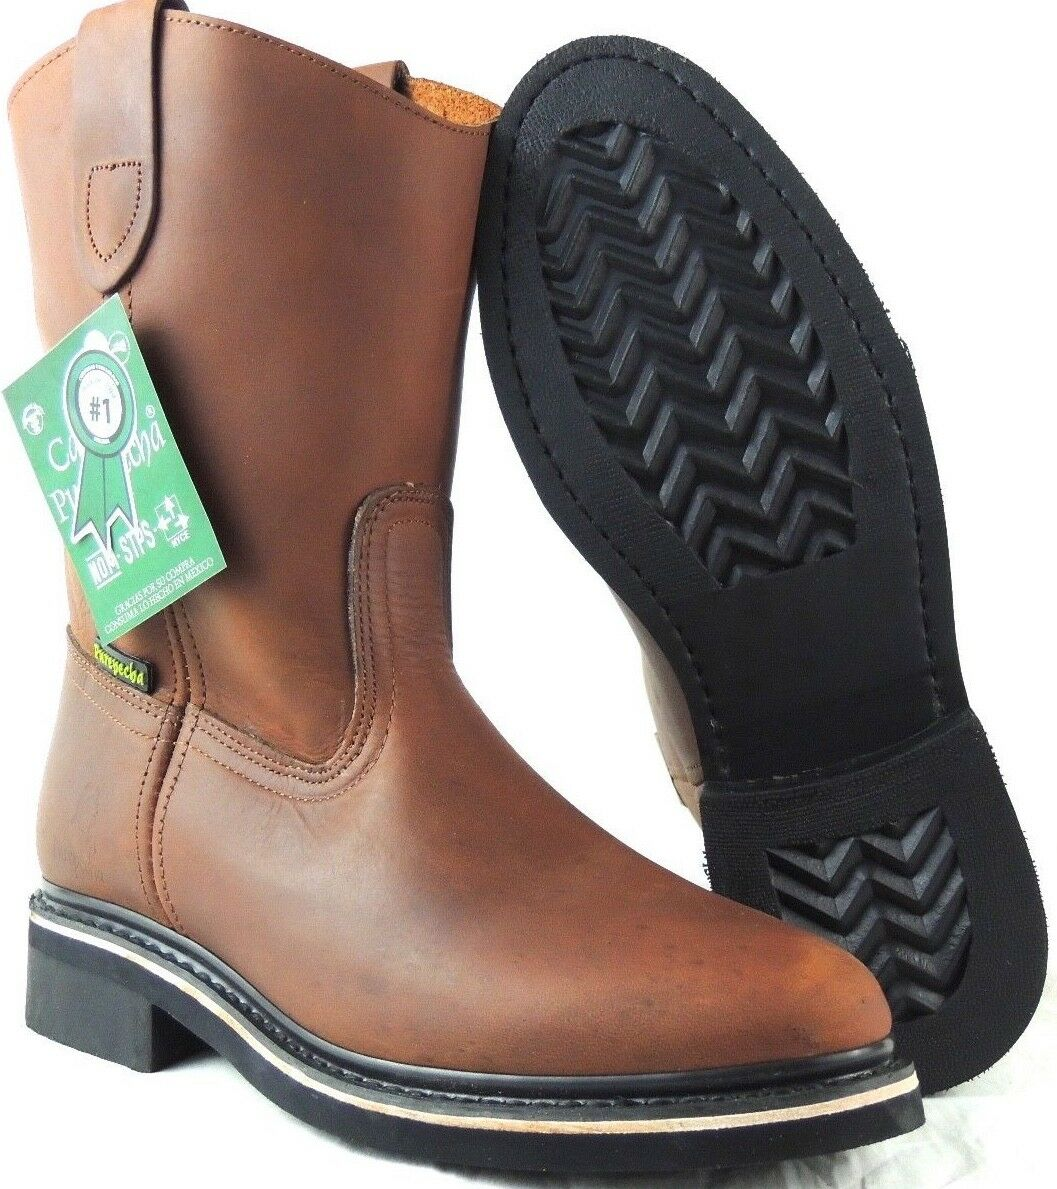 MEN'S WORK BOOTS GENUINE LEATHER BROWN COLOR WESTERN BOTAS COWBOY PULL ON